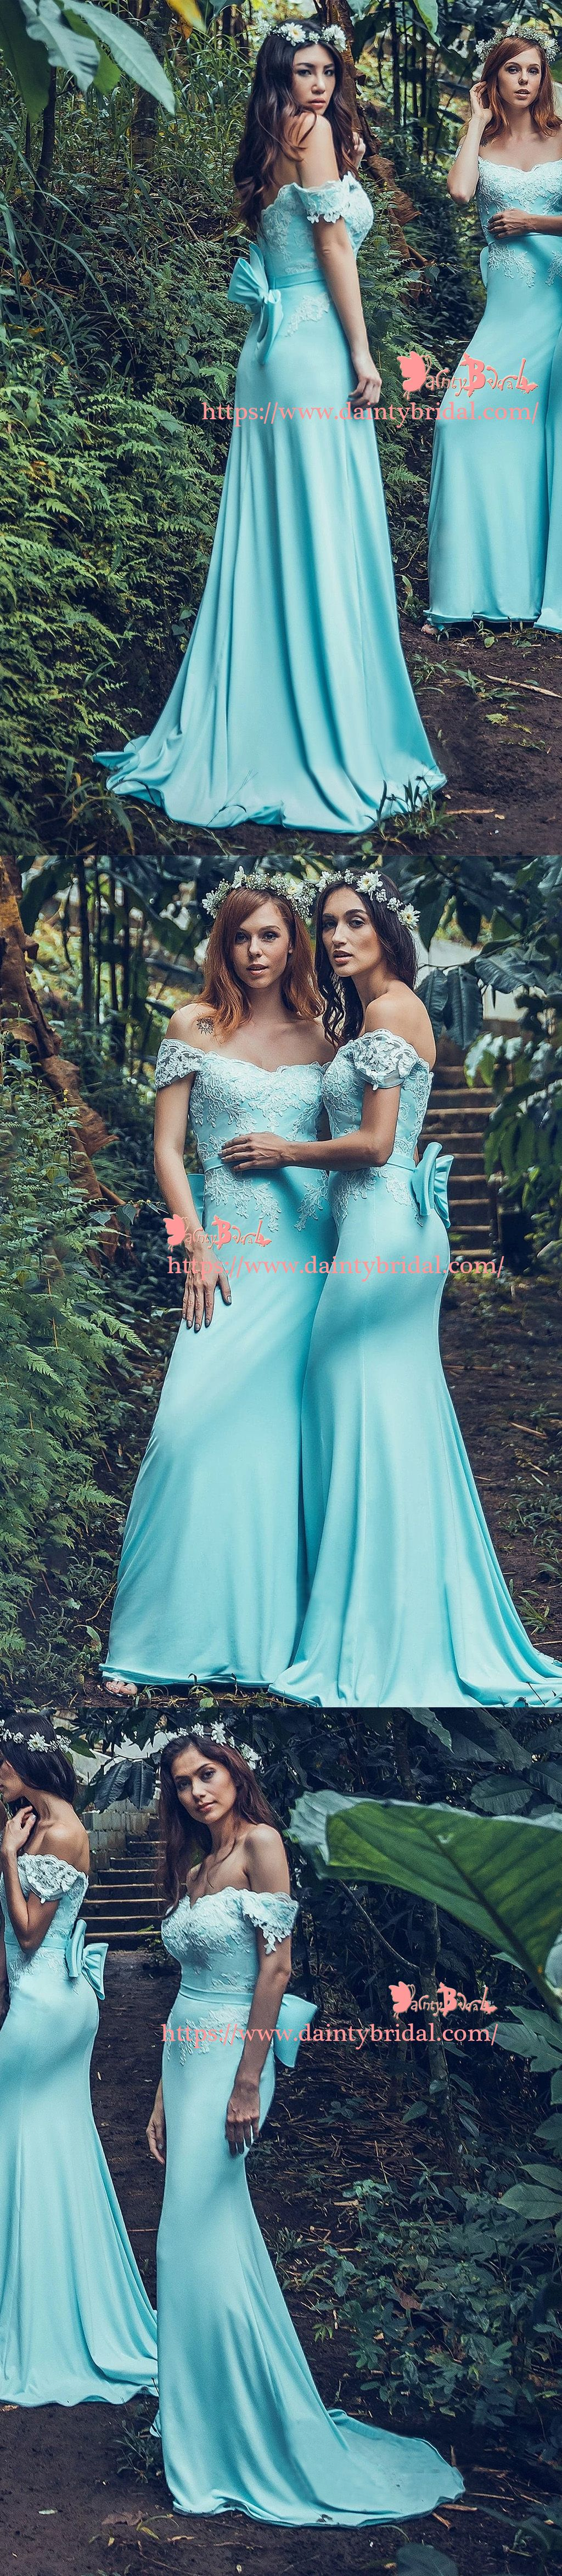 Turquoise wedding dresses  Off Shoulder Charming Blue With Bowknot Sash Lace Appliques Mermaid